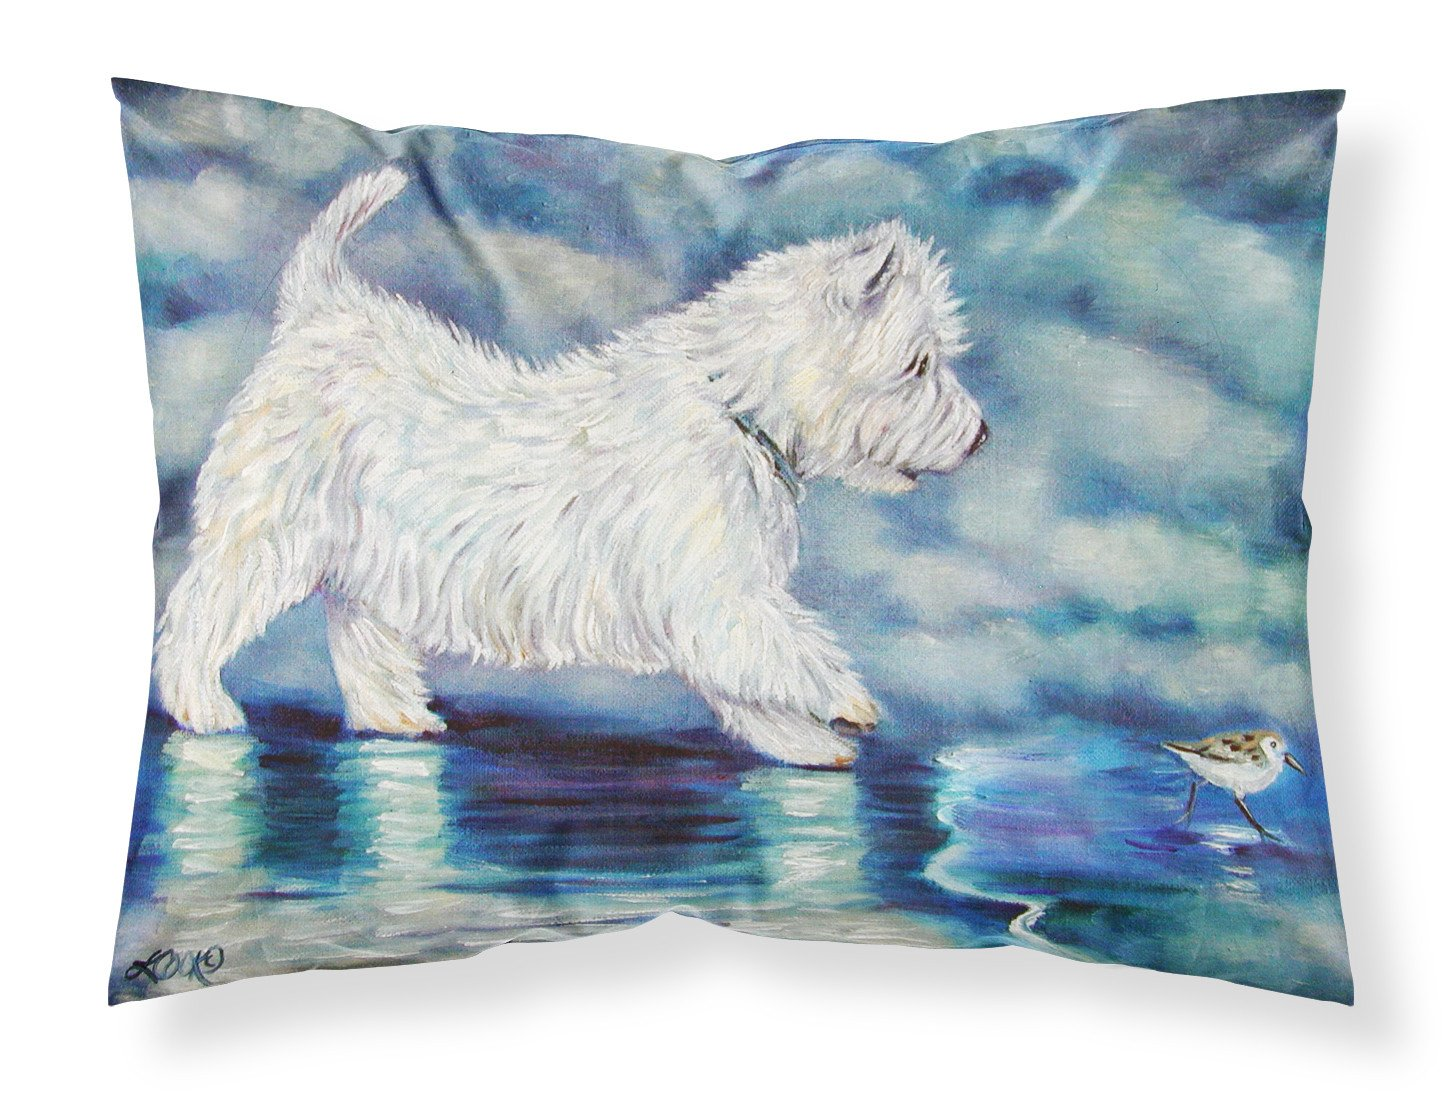 Misty Westie Fabric Standard Pillowcase 7334PILLOWCASE by Caroline's Treasures